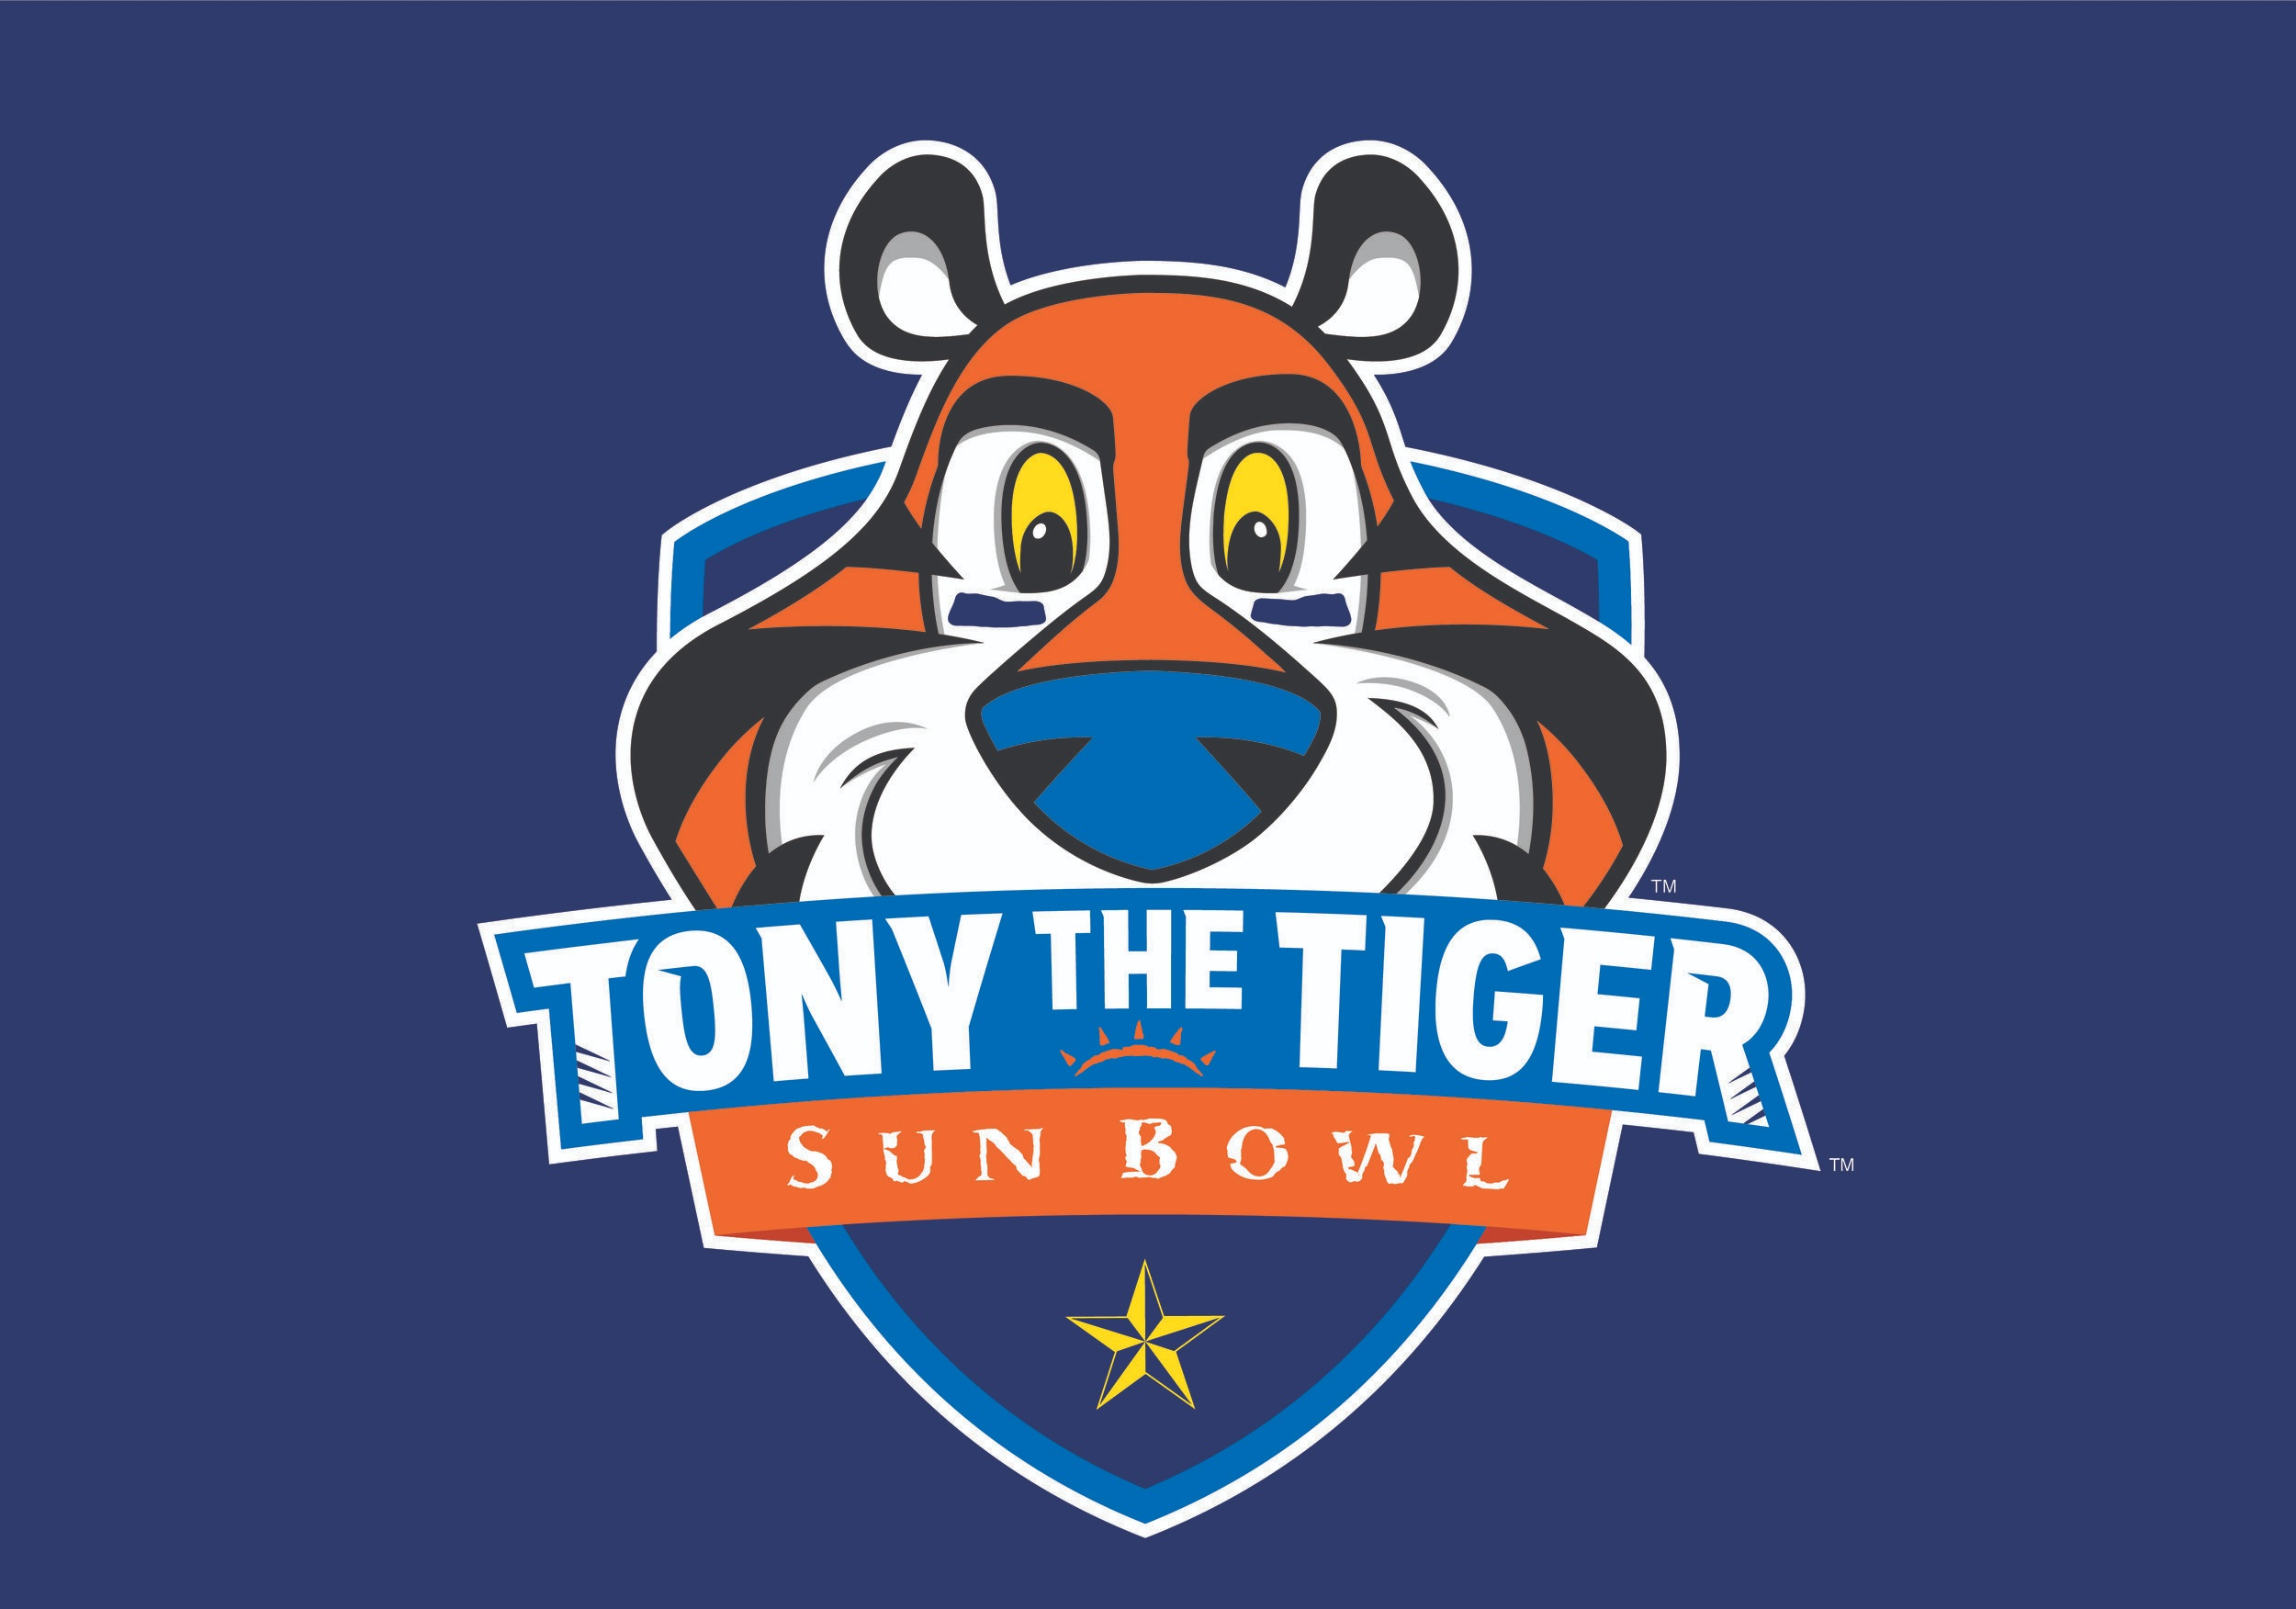 IMPRESSION SPORTS SECURES TONY THE TIGER AS SUN BOWL TITLE SPONSOR